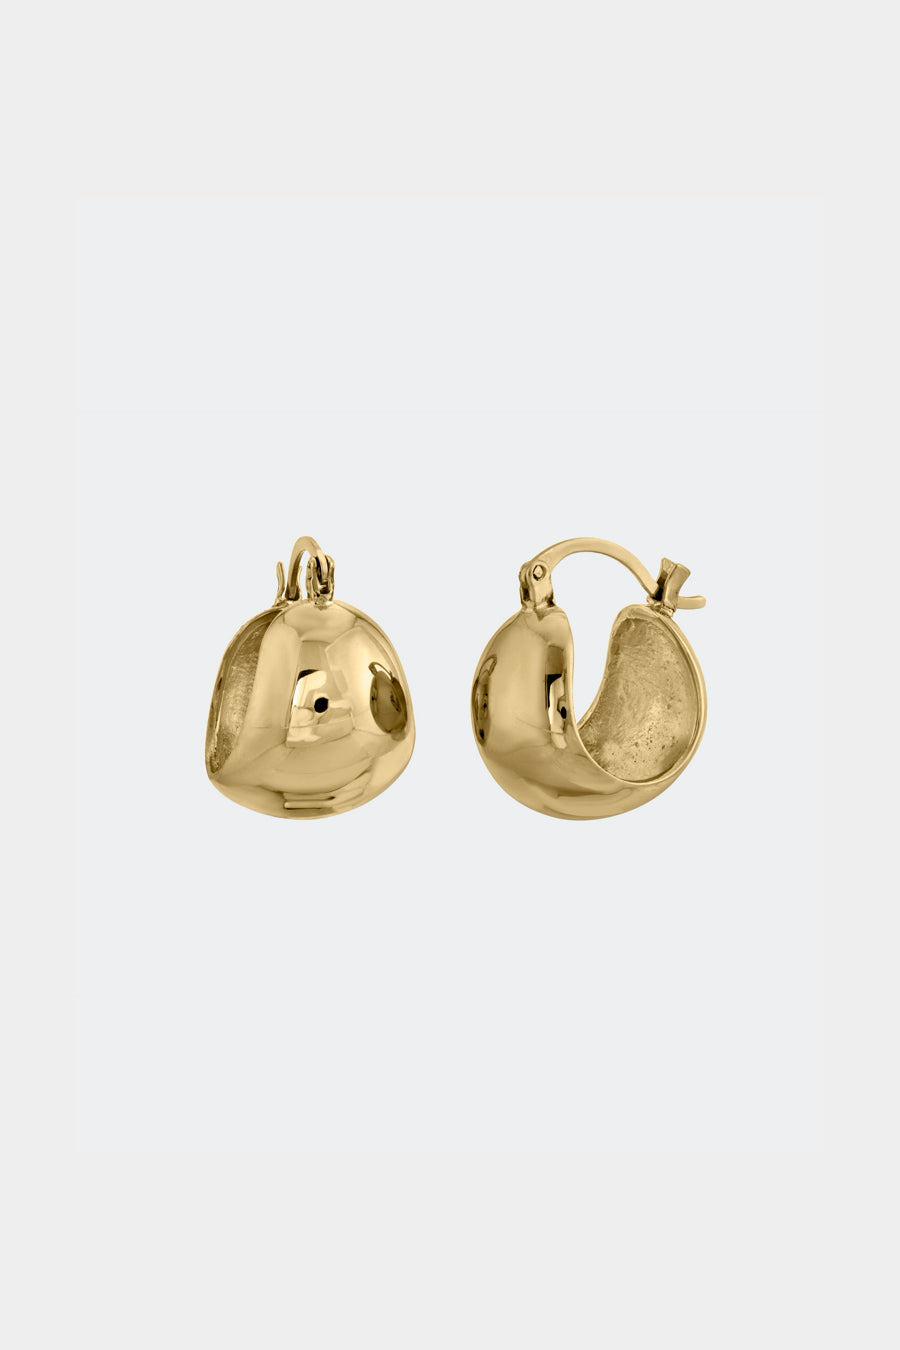 Modern Weaving Bubble Hinge Hoop Earrings (14k Gold)